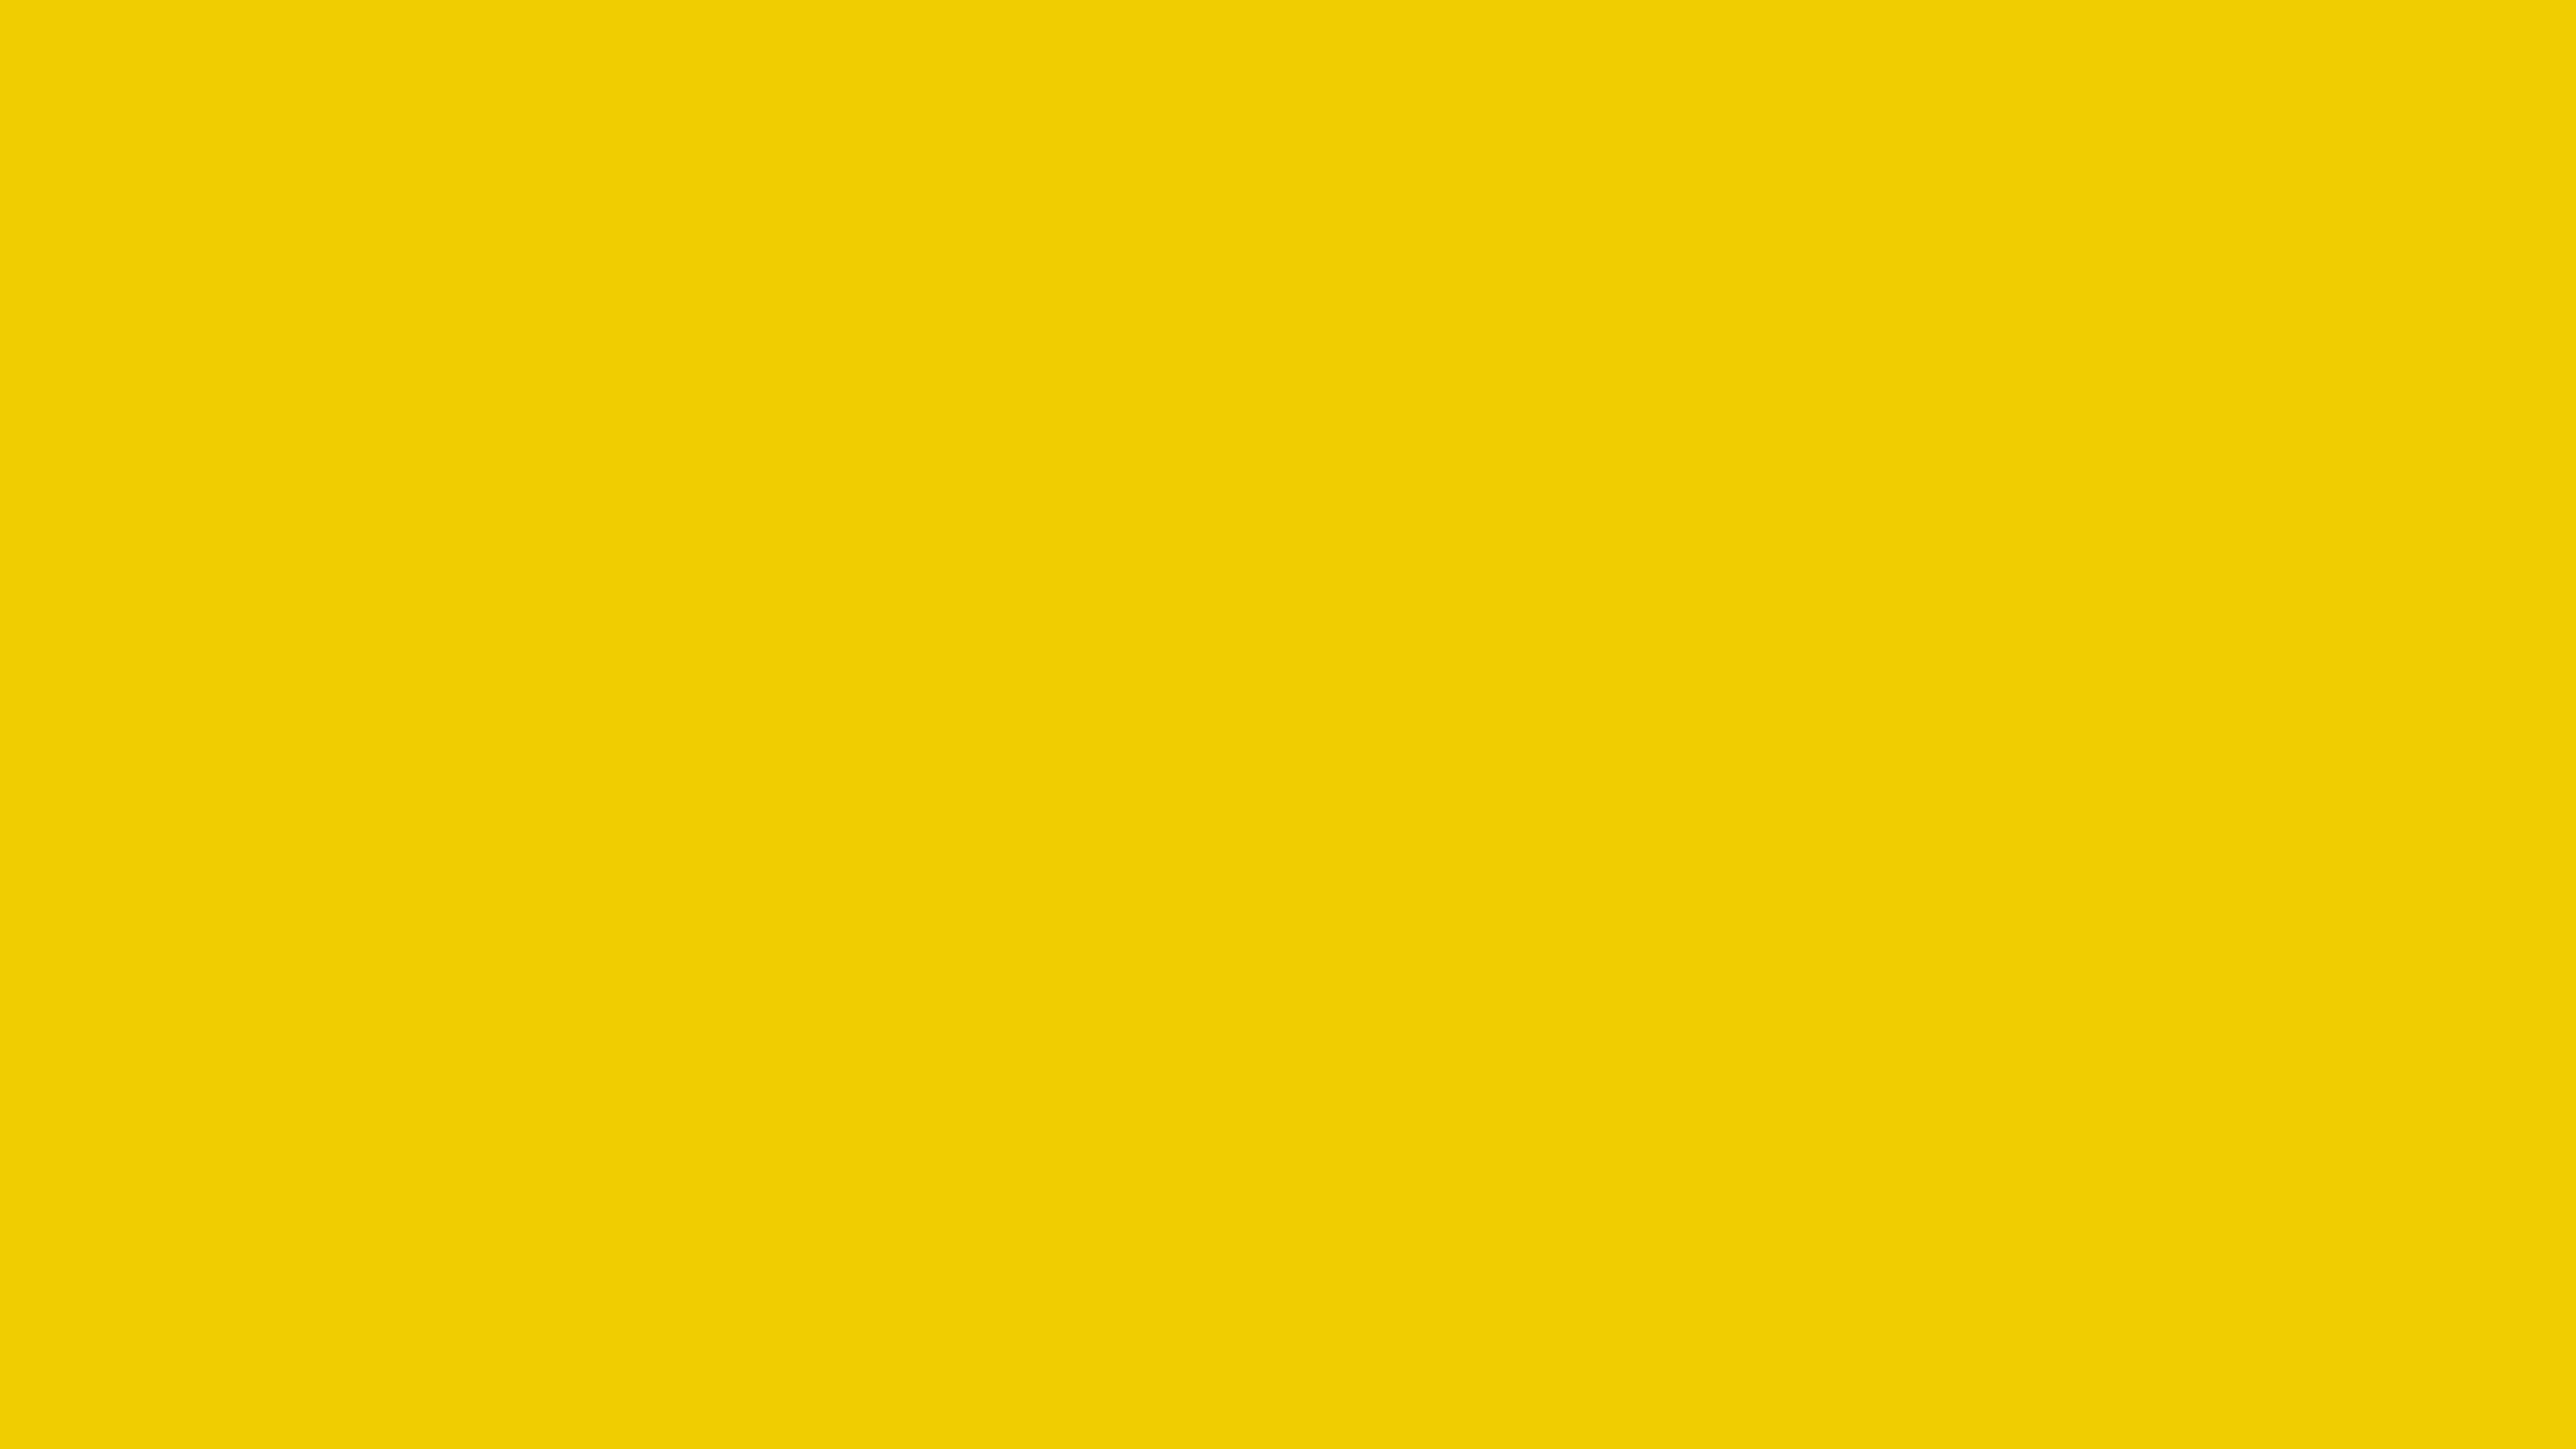 3840x2160 Yellow Munsell Solid Color Background